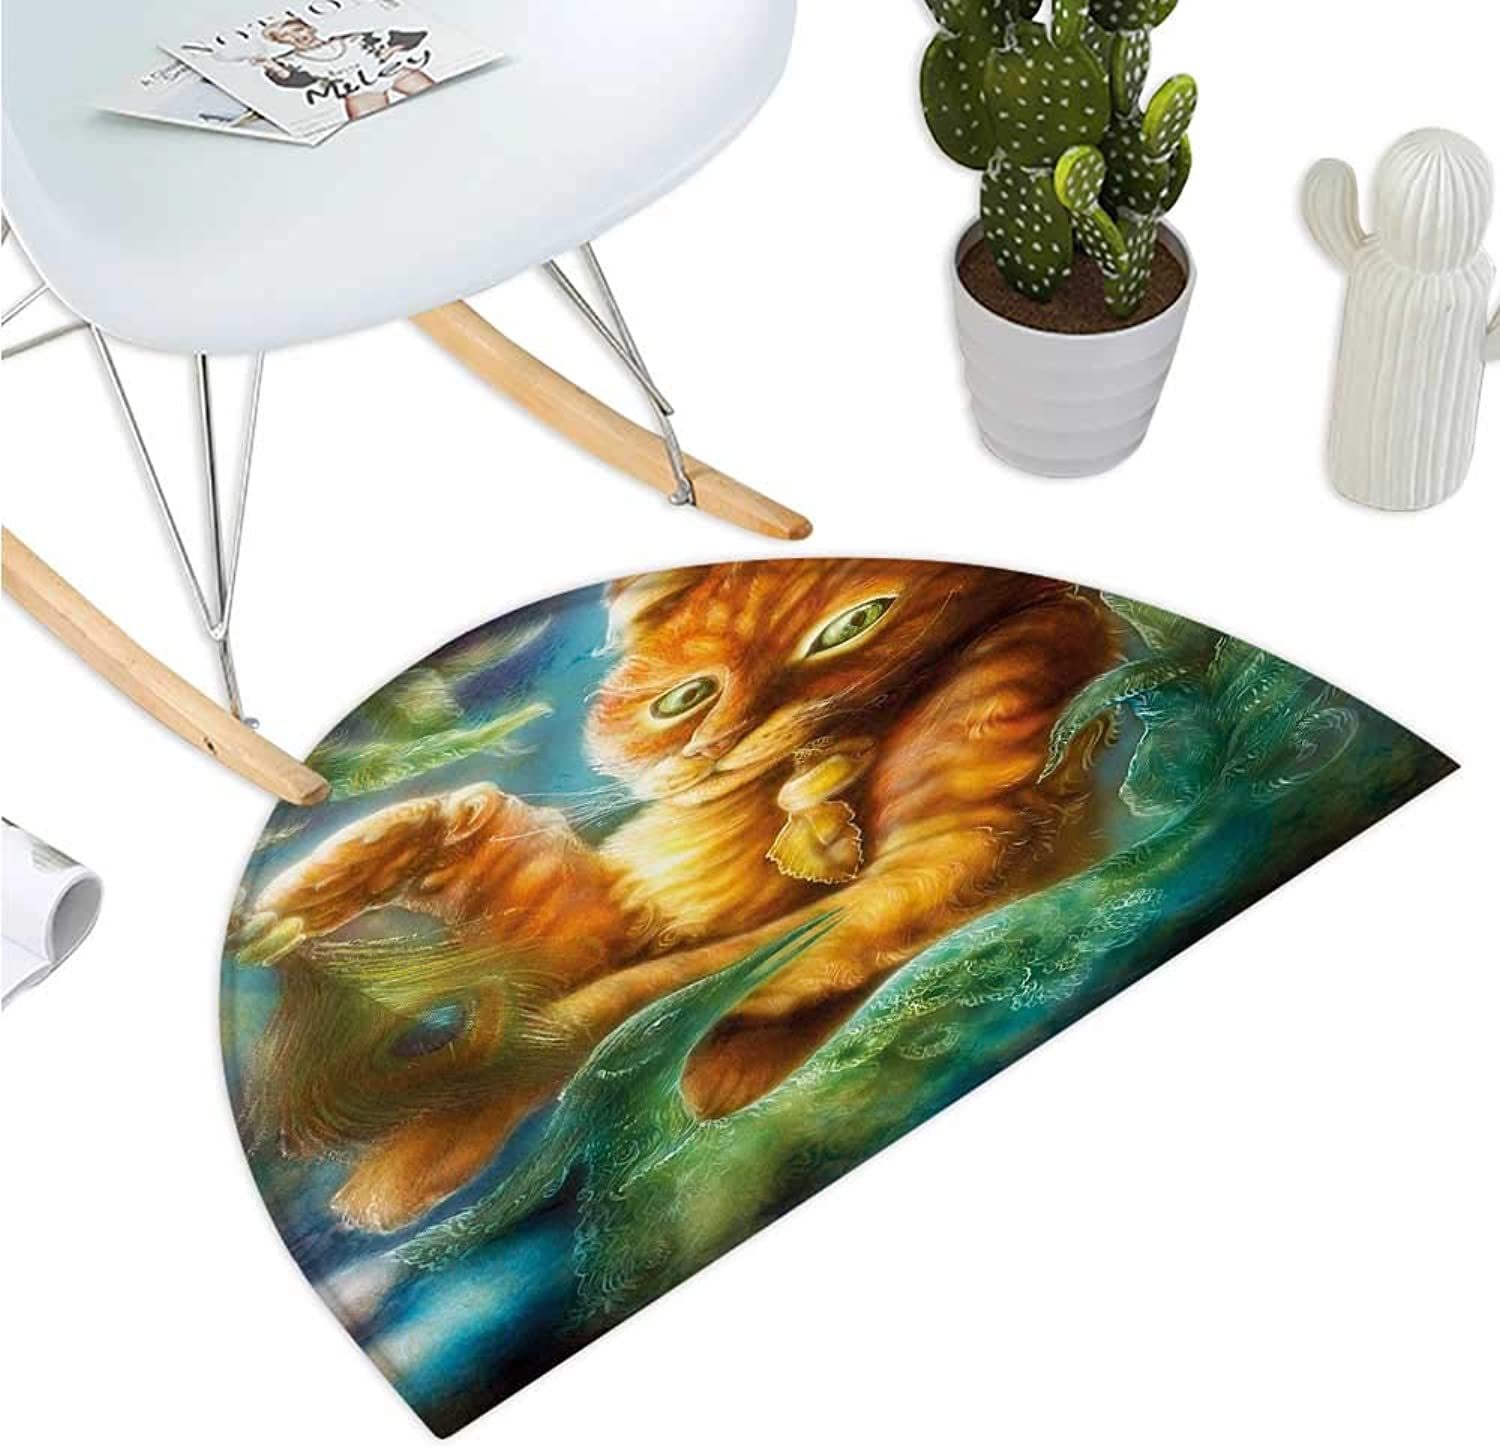 Cats Semicircular Cushion Fantasy Painting Radiant orange Cartoon Cat Peacock Feather Bird Magical Dreamy Entry Door Mat H 43.3  xD 64.9  orange Green bluee